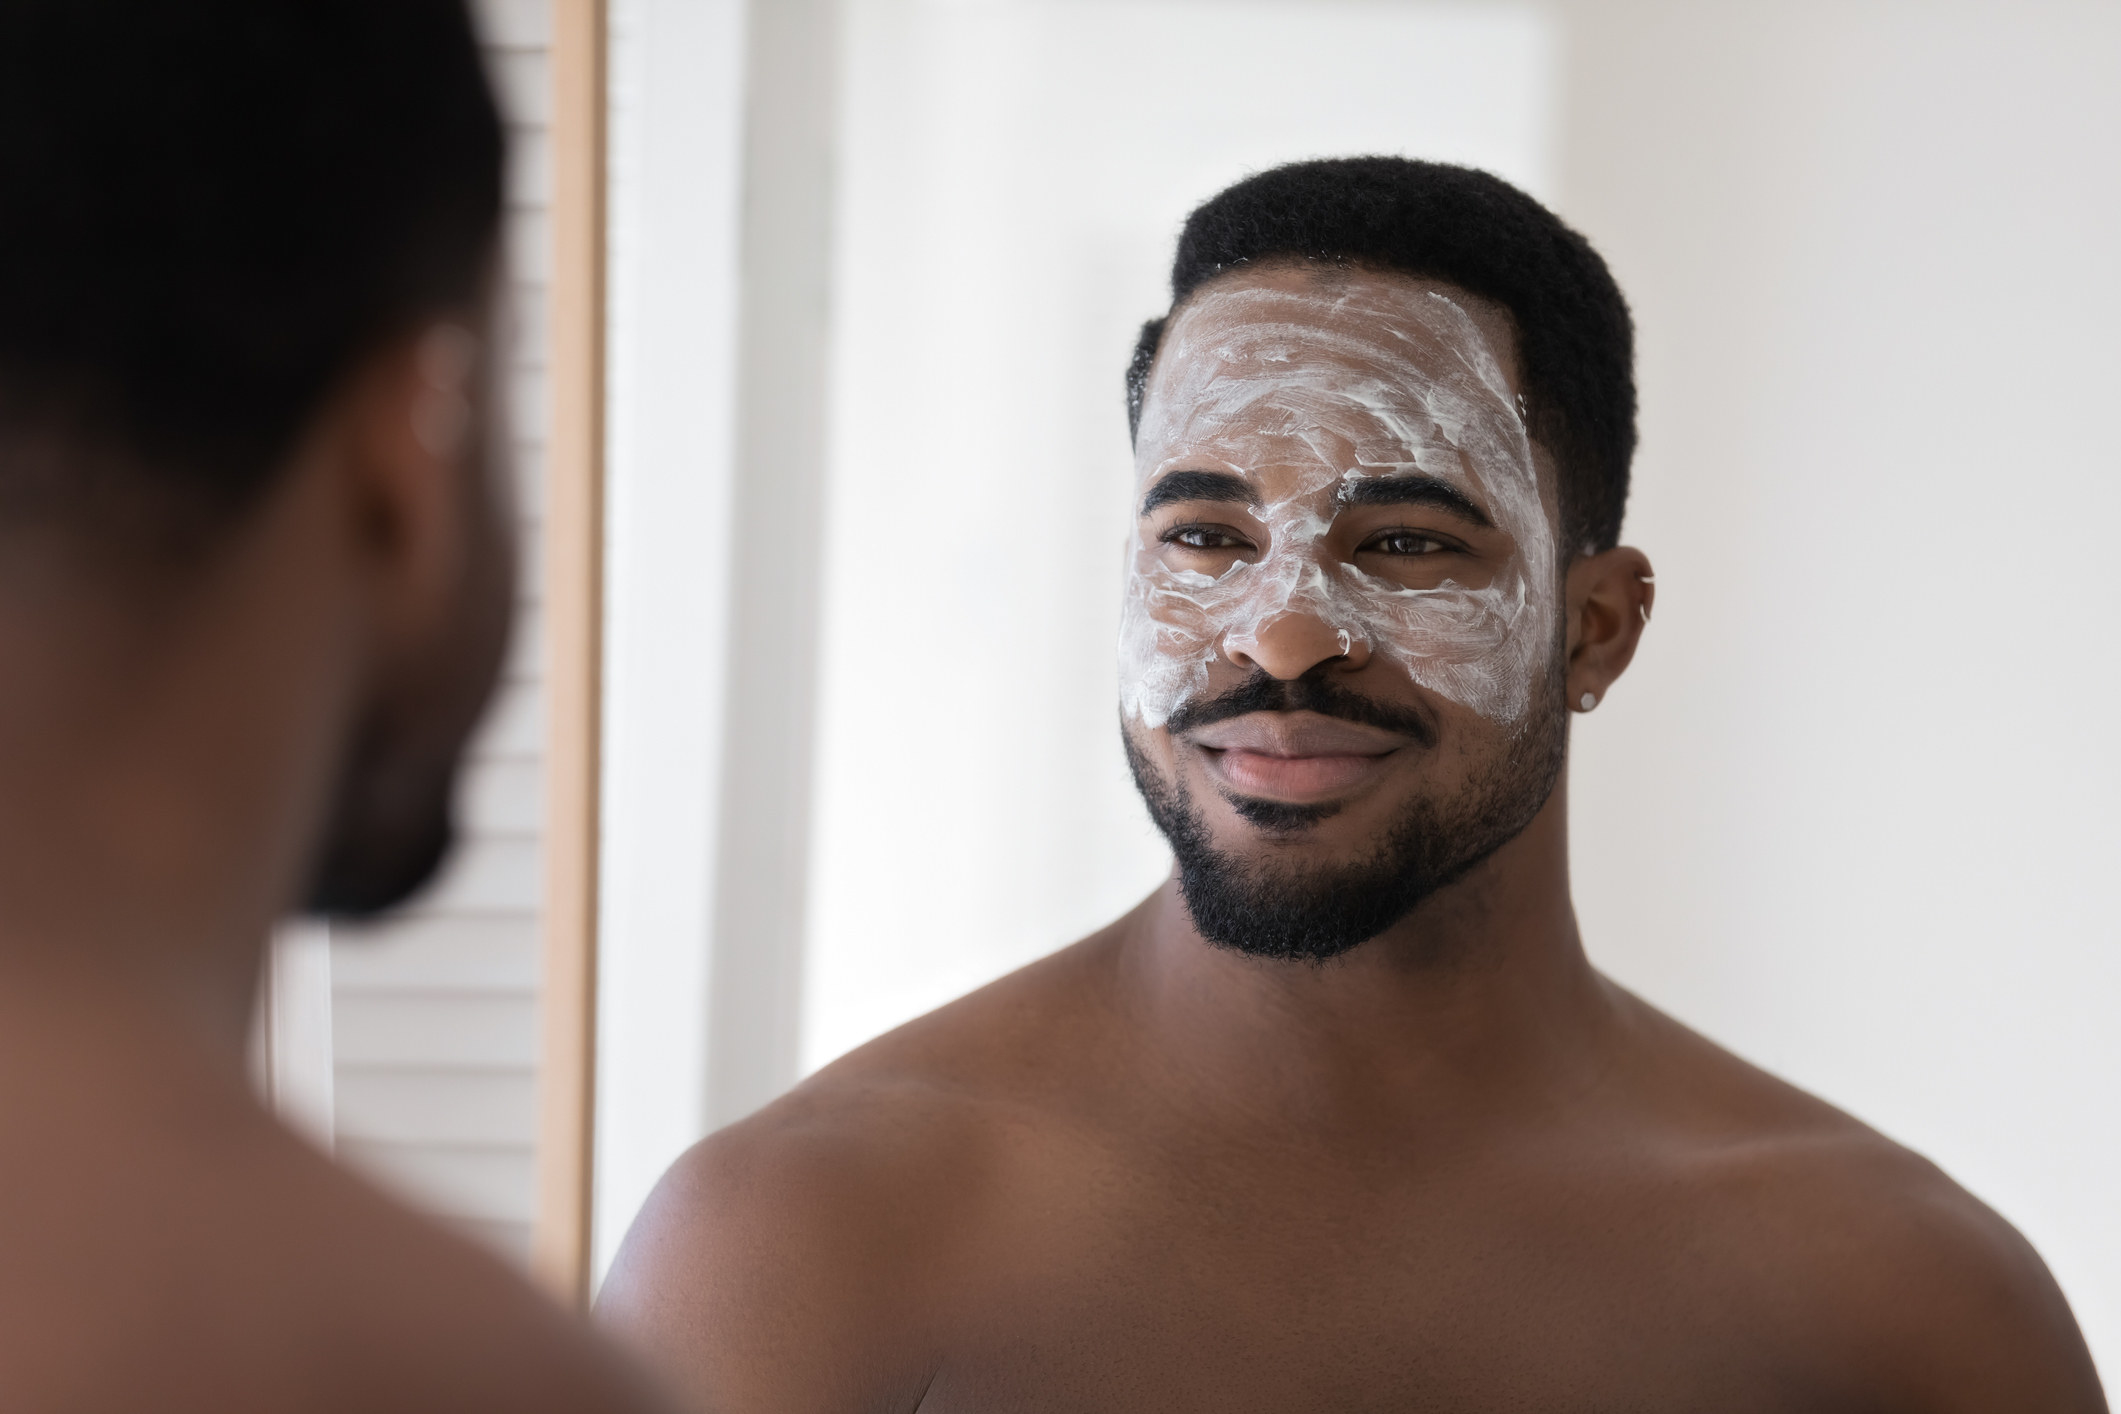 Man wearing a moisturizing mask